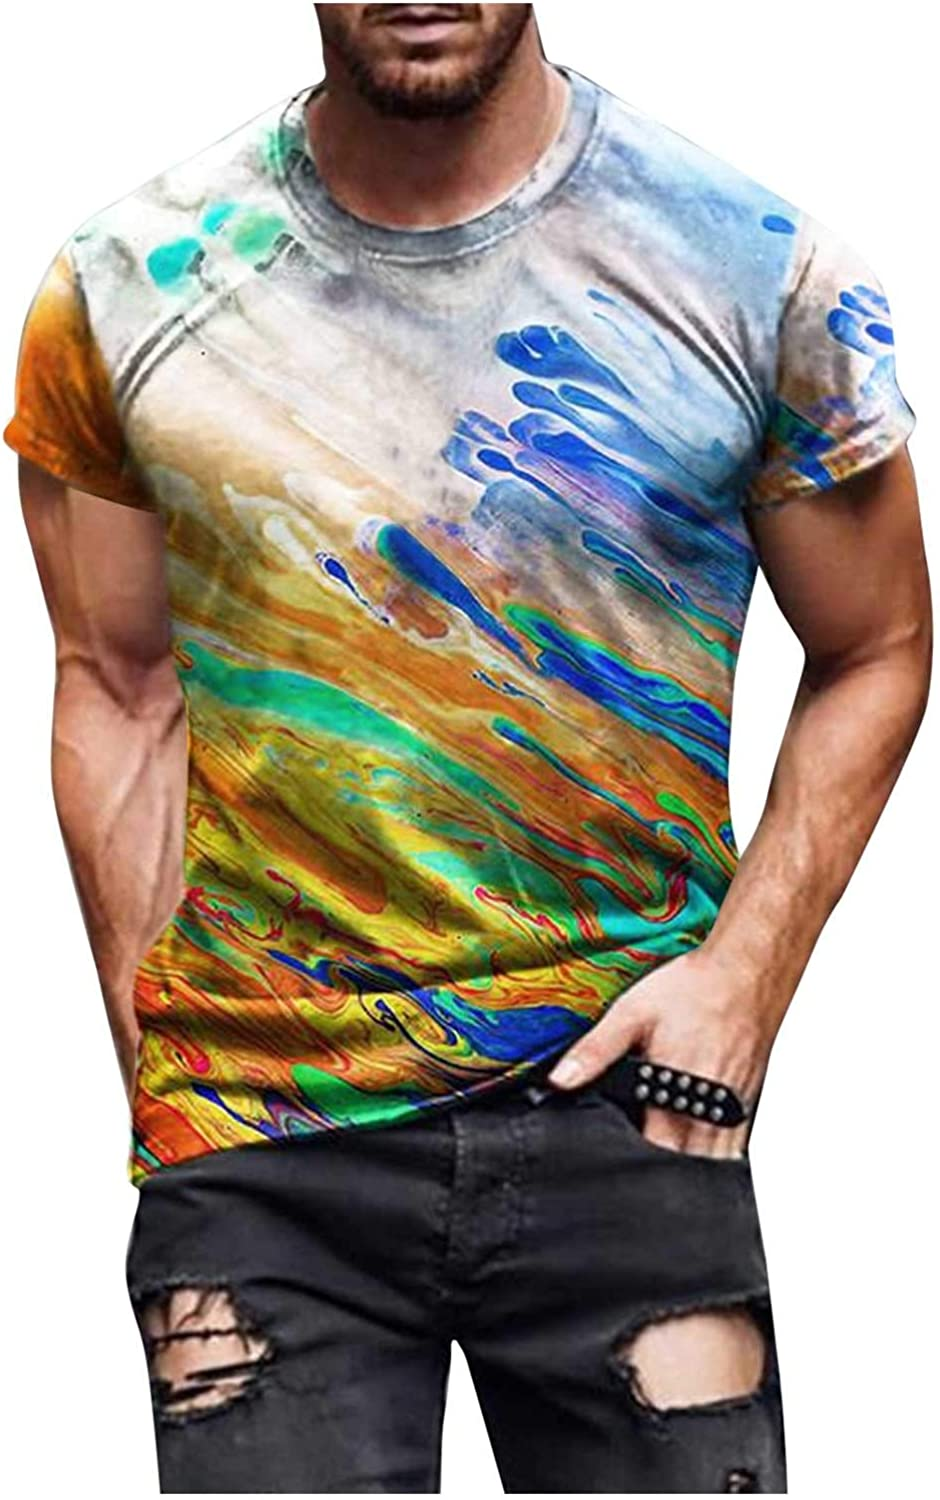 DZQUY Men's Summer Workout T Shirts Short Sleeve Casual Hipster Cross Belief Printed Collar Sports Muscle Shirts Tops Blouse